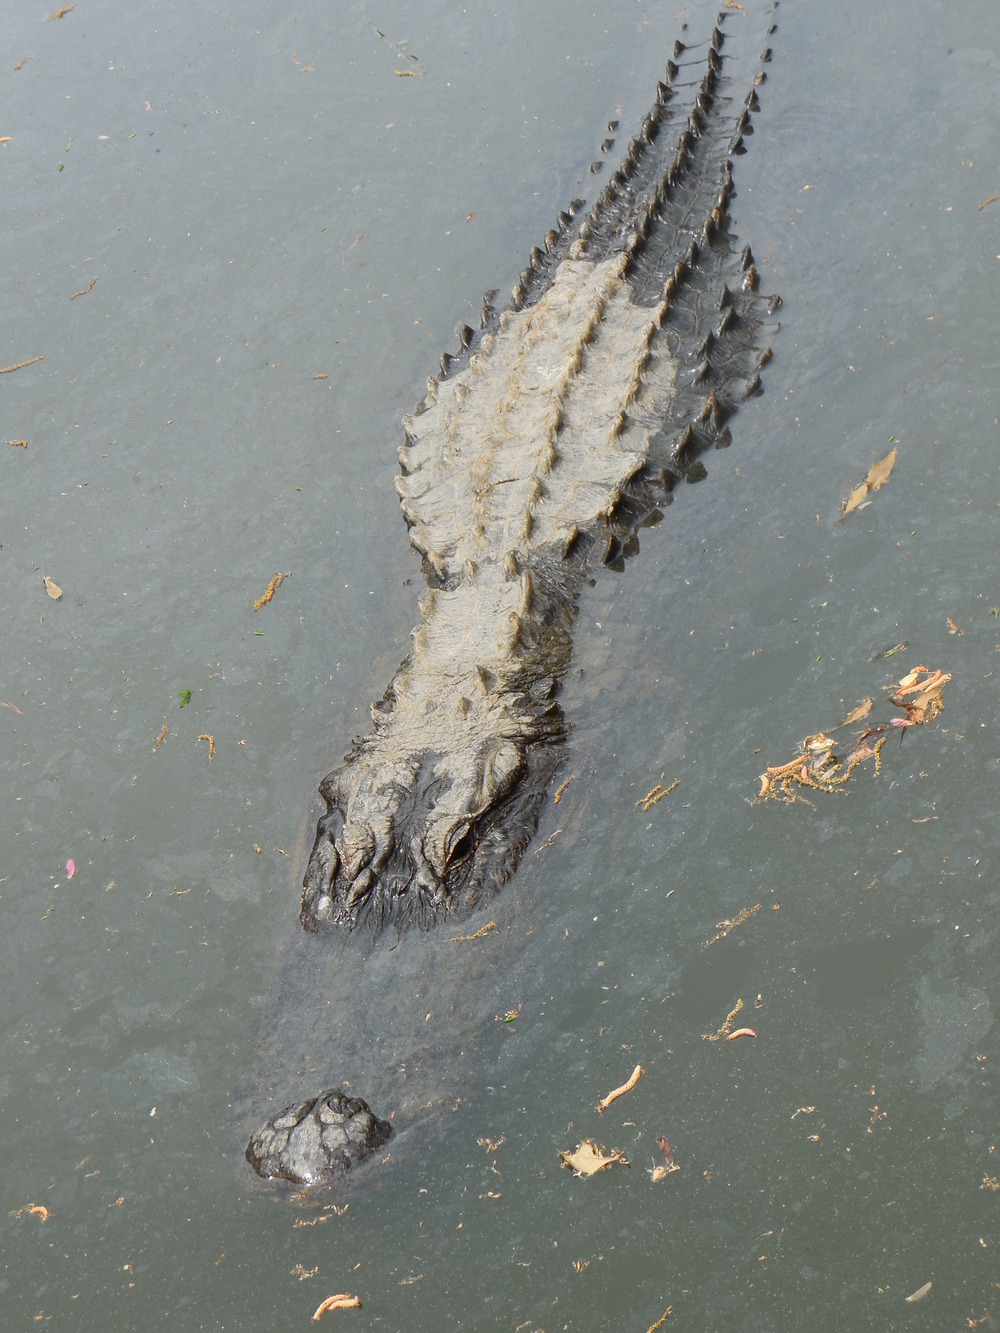 American Alligator during a Nature & Wildlife River boat Tour at Waccamaw River Tours. 4/2014 Photo by Kim Carlson